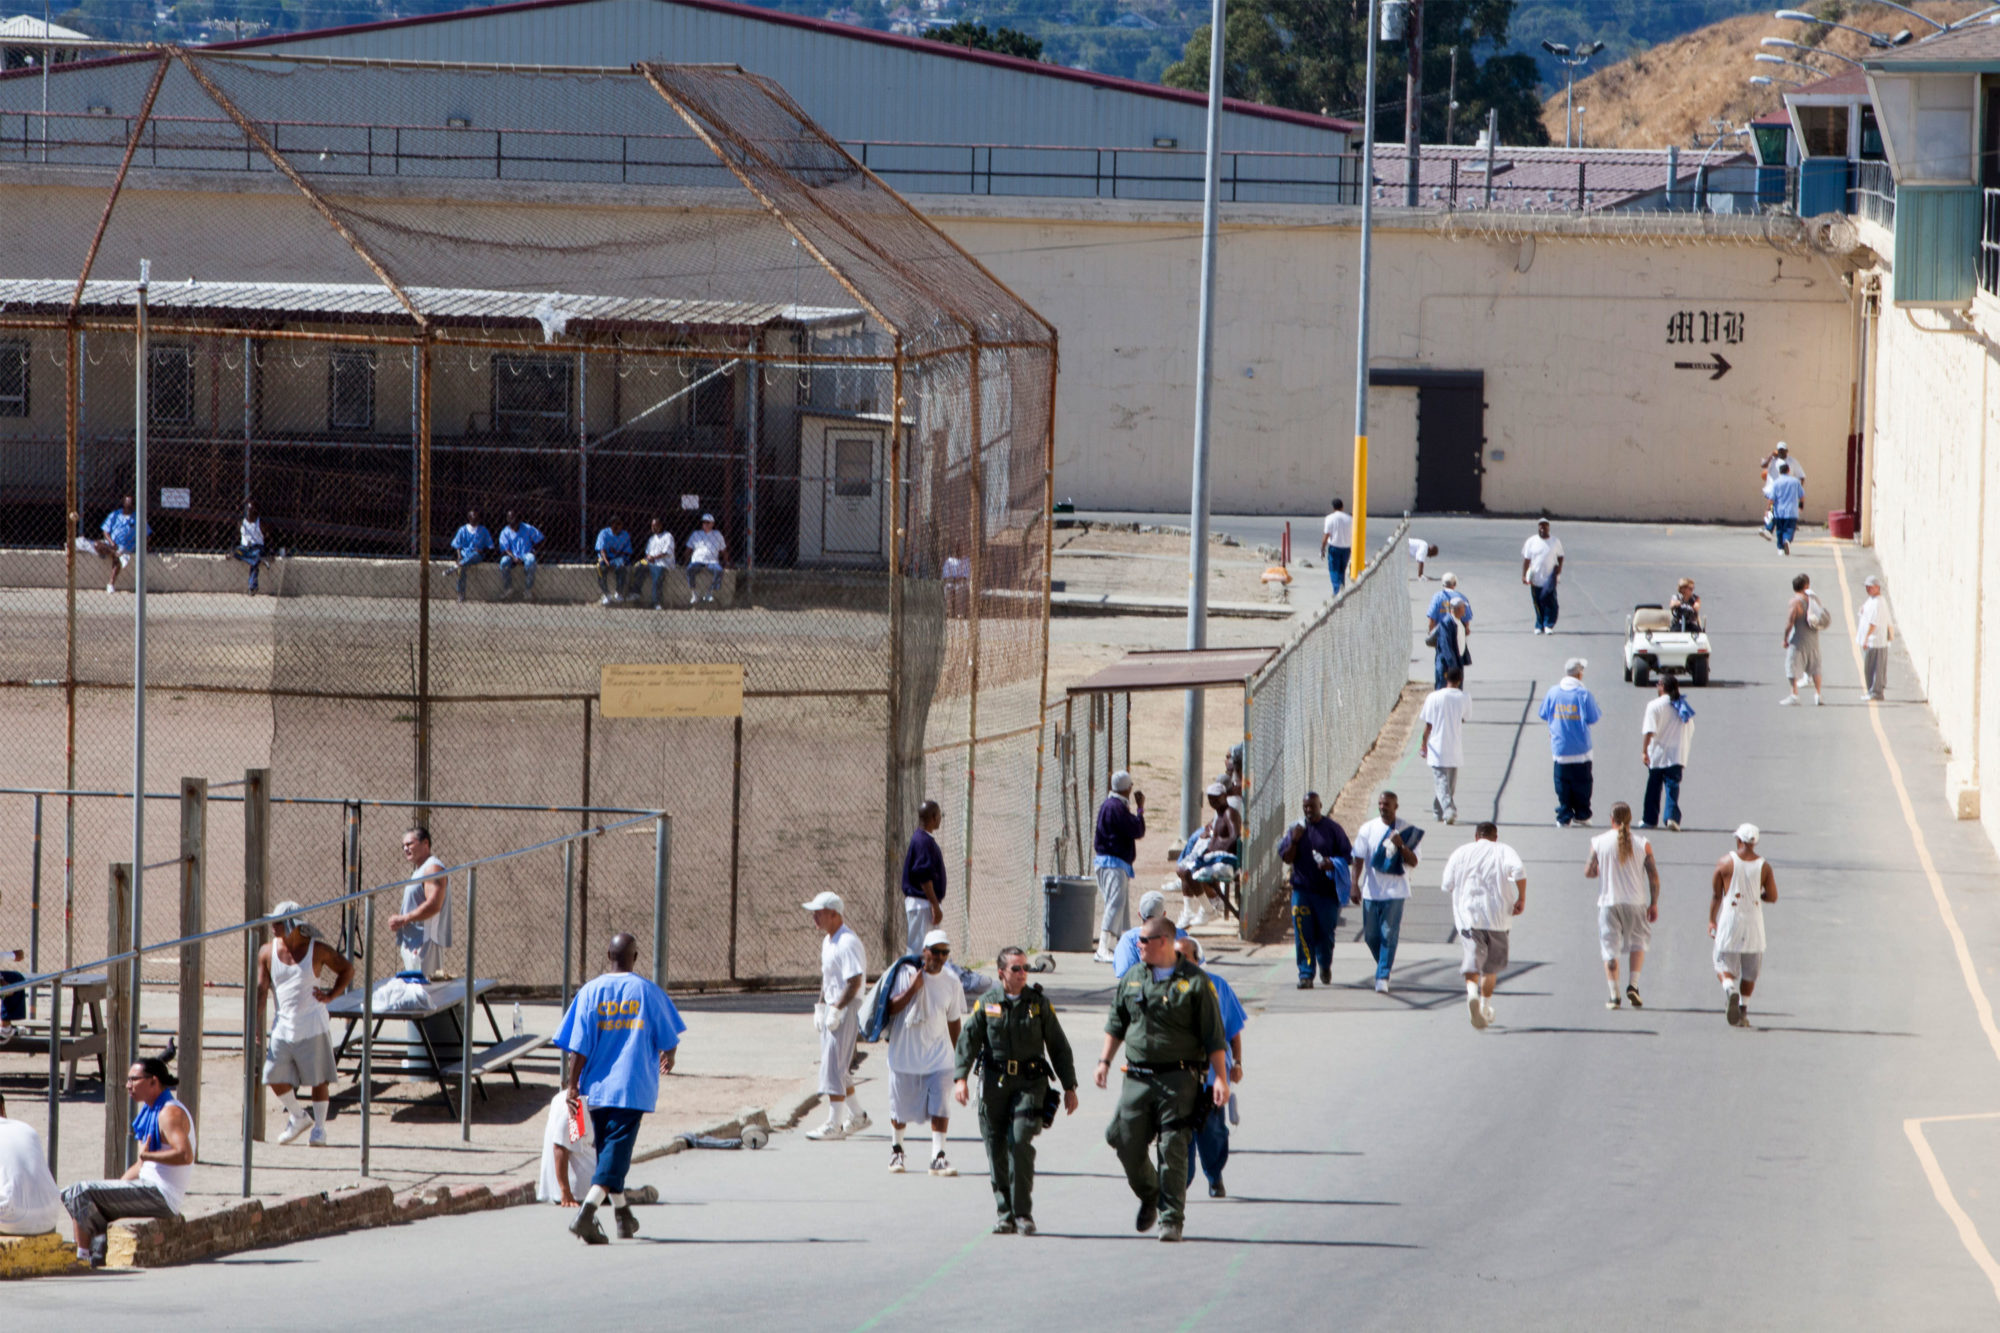 Cruel and Unusual: A Guide to California's Broken Prisons and the Fight to Fix Them